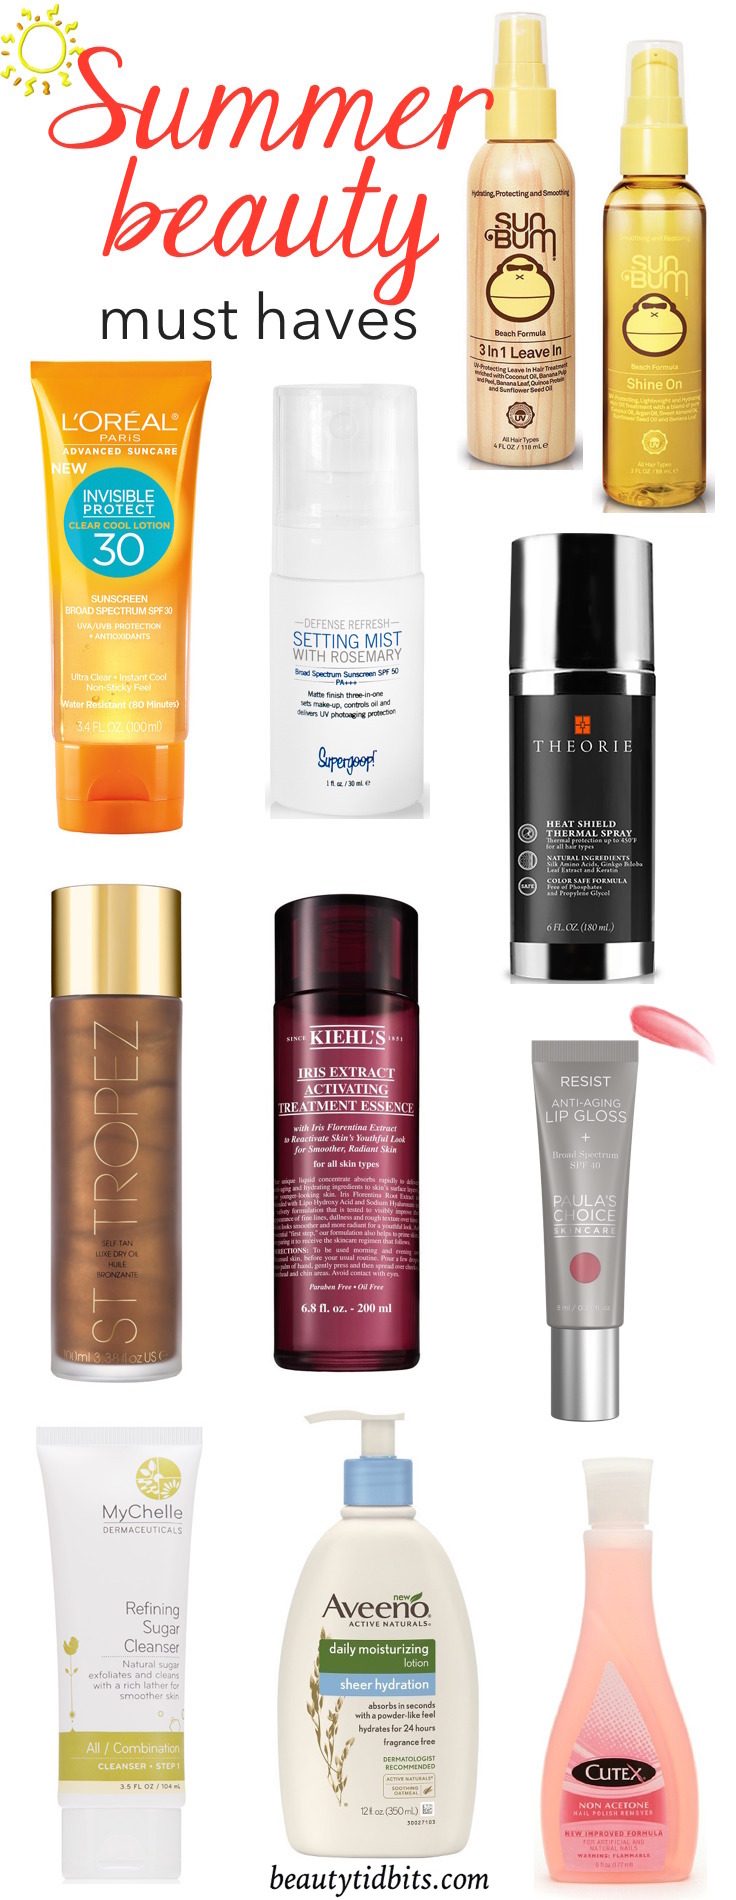 Summer Beauty Picks